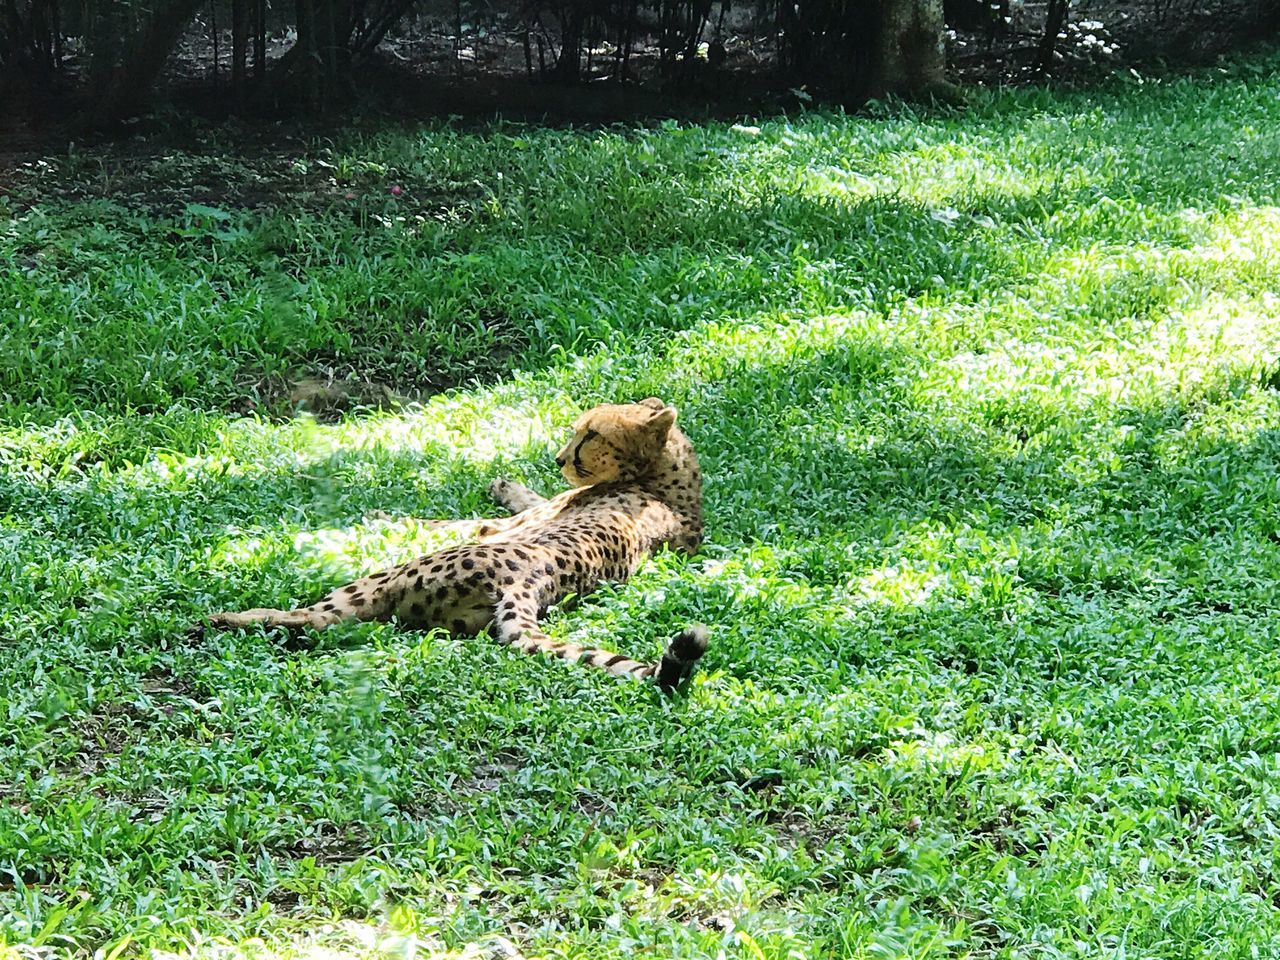 Grass Green Color Animals In The Wild Animal Themes Mammal One Animal Outdoors Nature Day Animal Wildlife Cheetah Growth Feline No People Leopard Singapore Zoo Singapore Zoological Garden Singapore